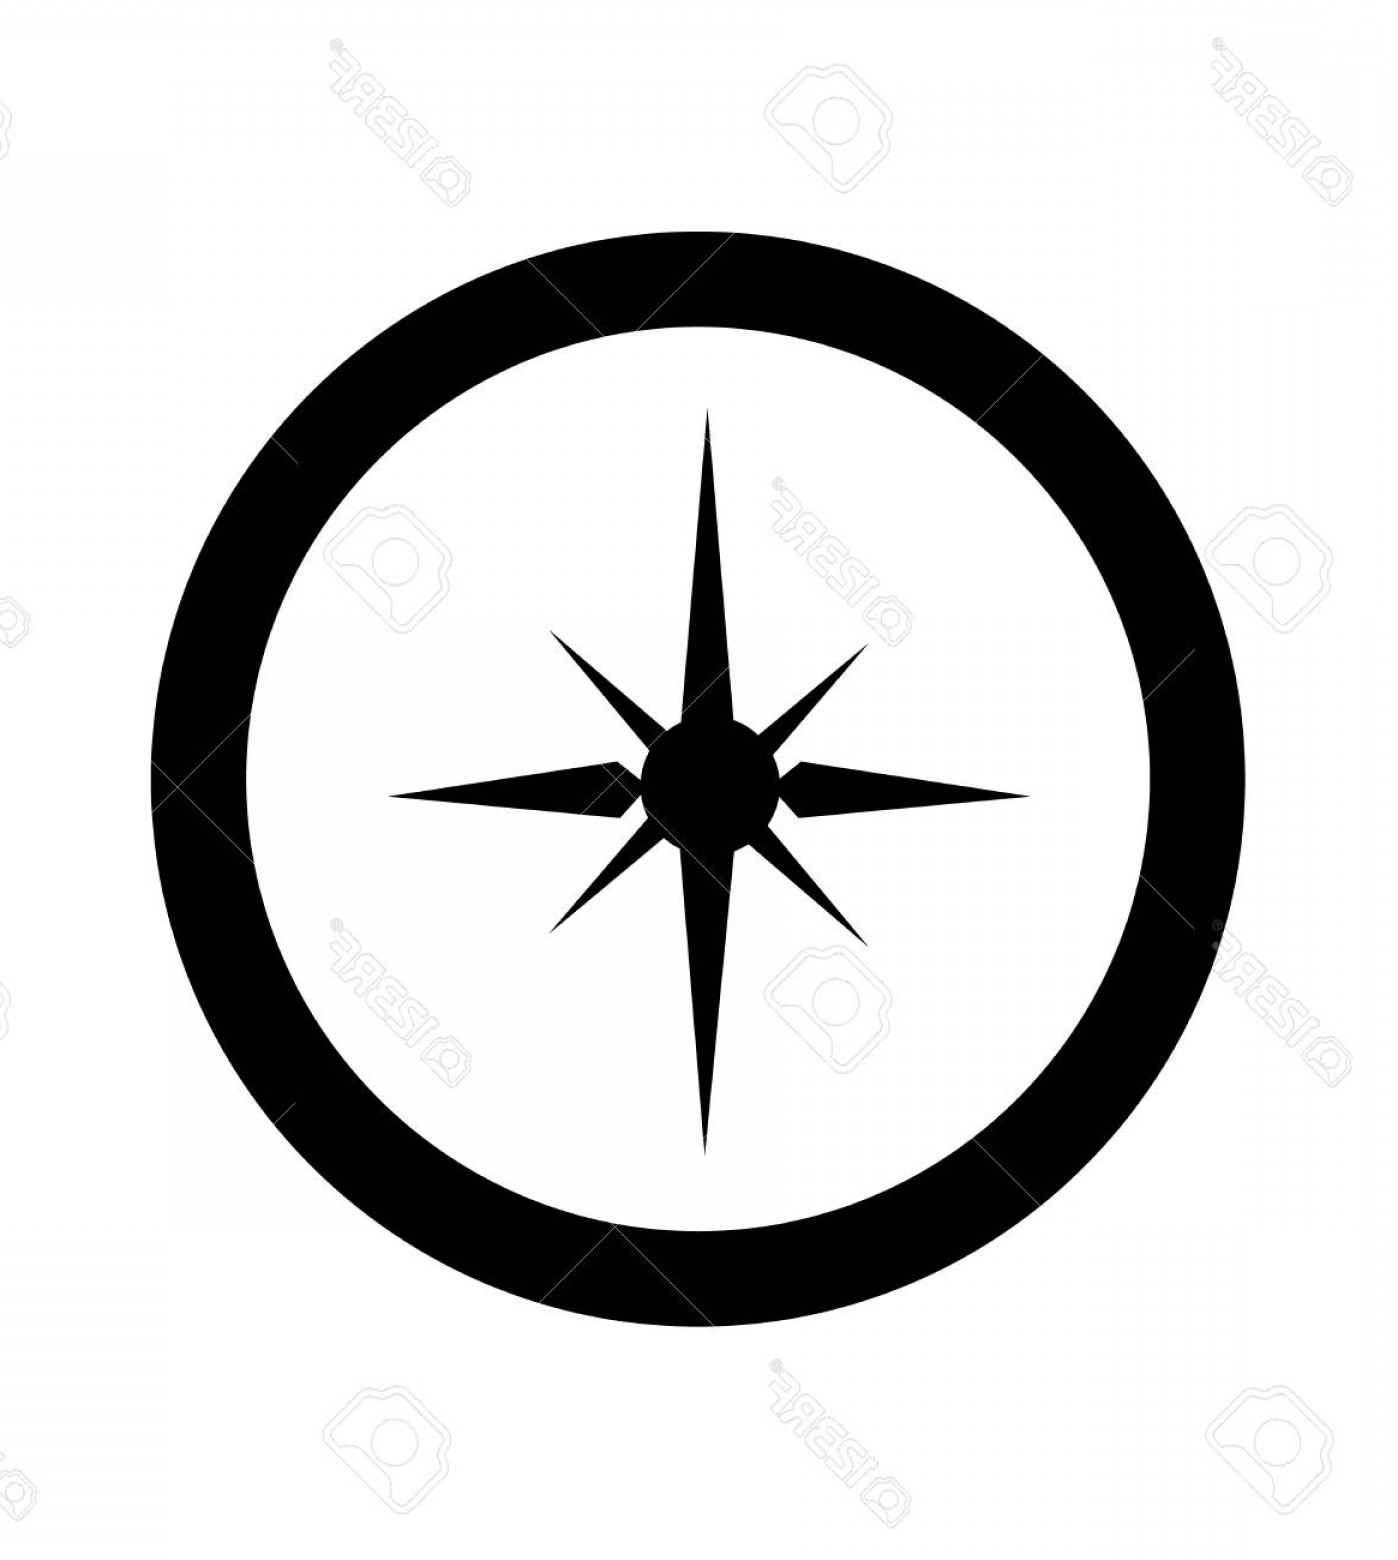 Simple Compass Vector Black And White: Photostock Vector Simple Black And Minimal Compass Logo Sign Or Icon